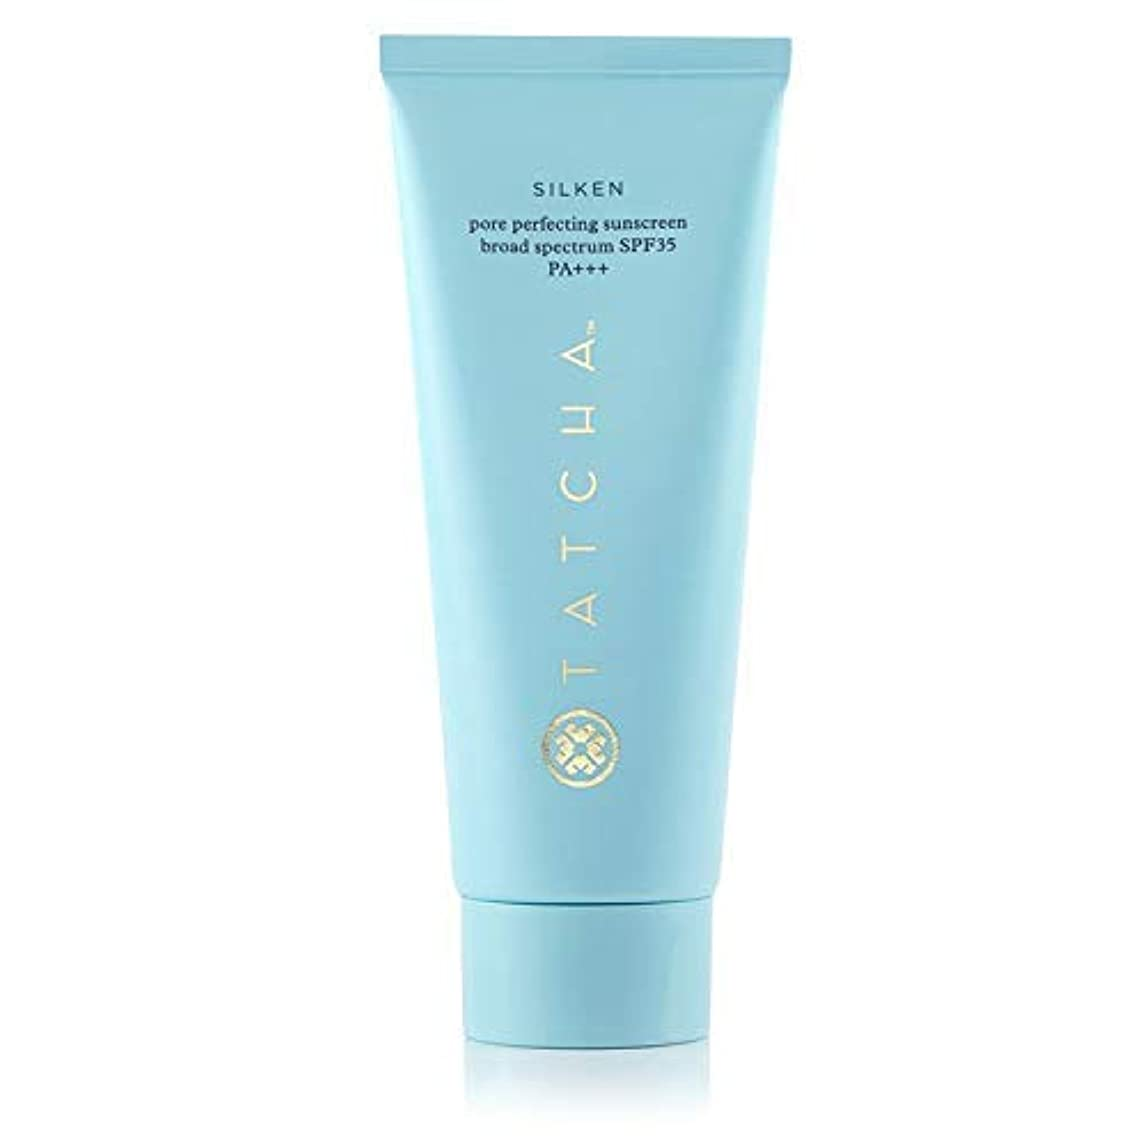 変化人気のスポンサーTATCHA SILKEN PORE PERFECTING SUNSCREEN Broad Spectrum SPF35 PA+++ 2 oz/ 59 mLタチャ 日焼け止めクリーム